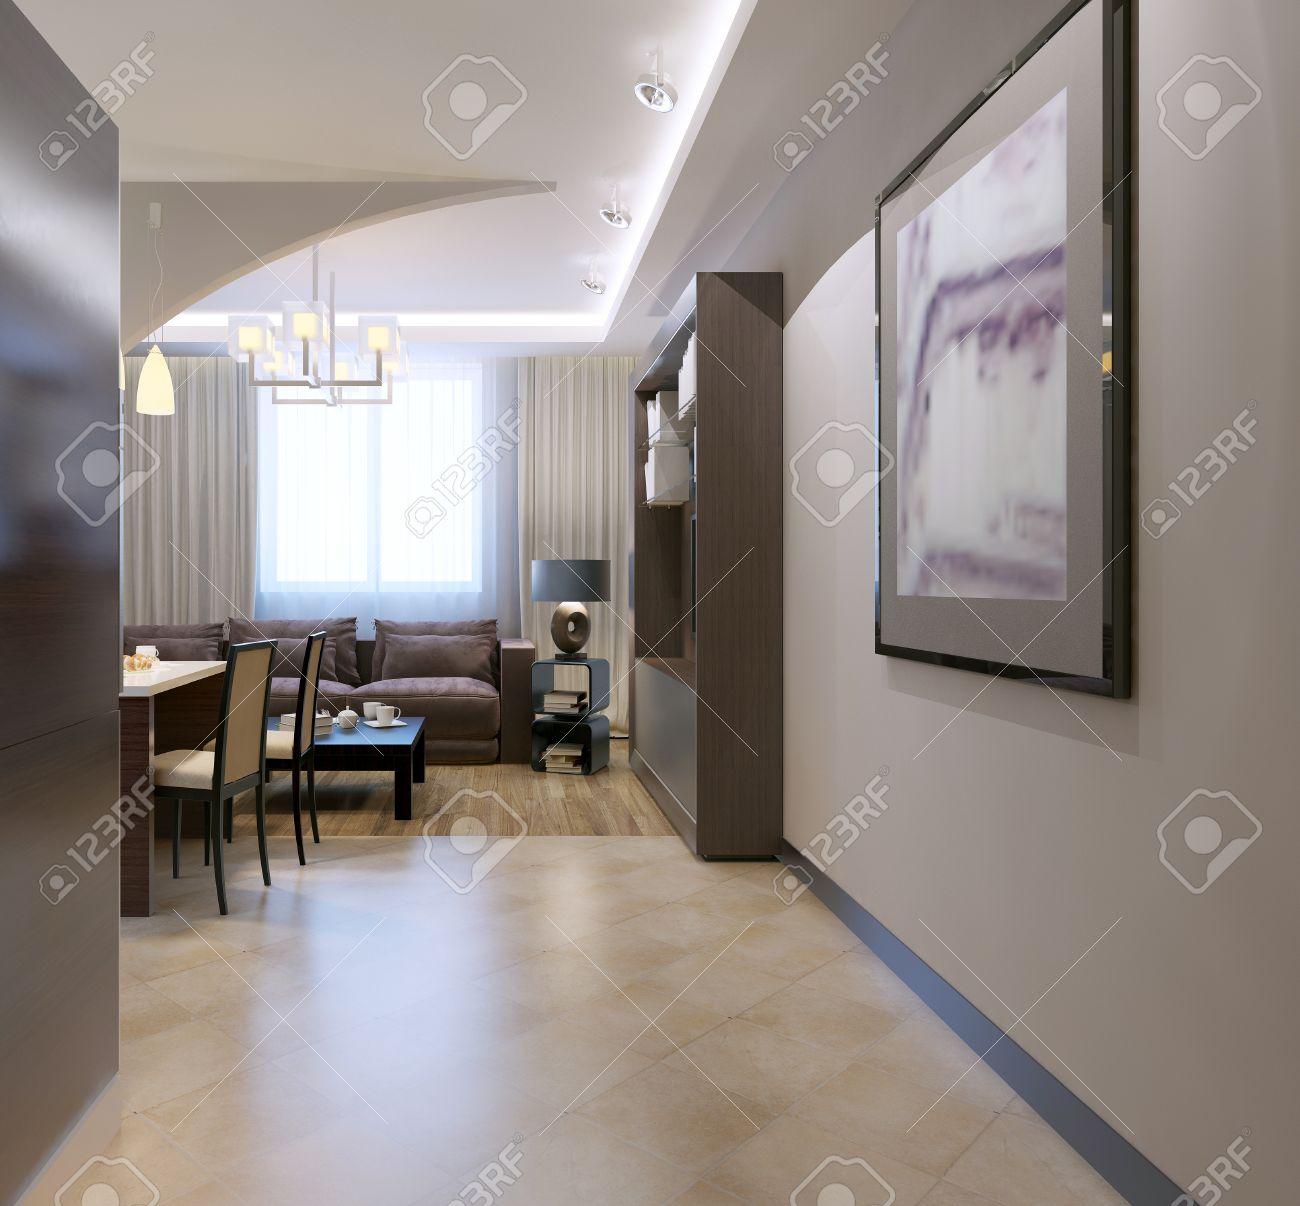 Great Entrance To Kitchen Studio. Contemporary Kitchen With Bar Separated From Living  Room By Arch,